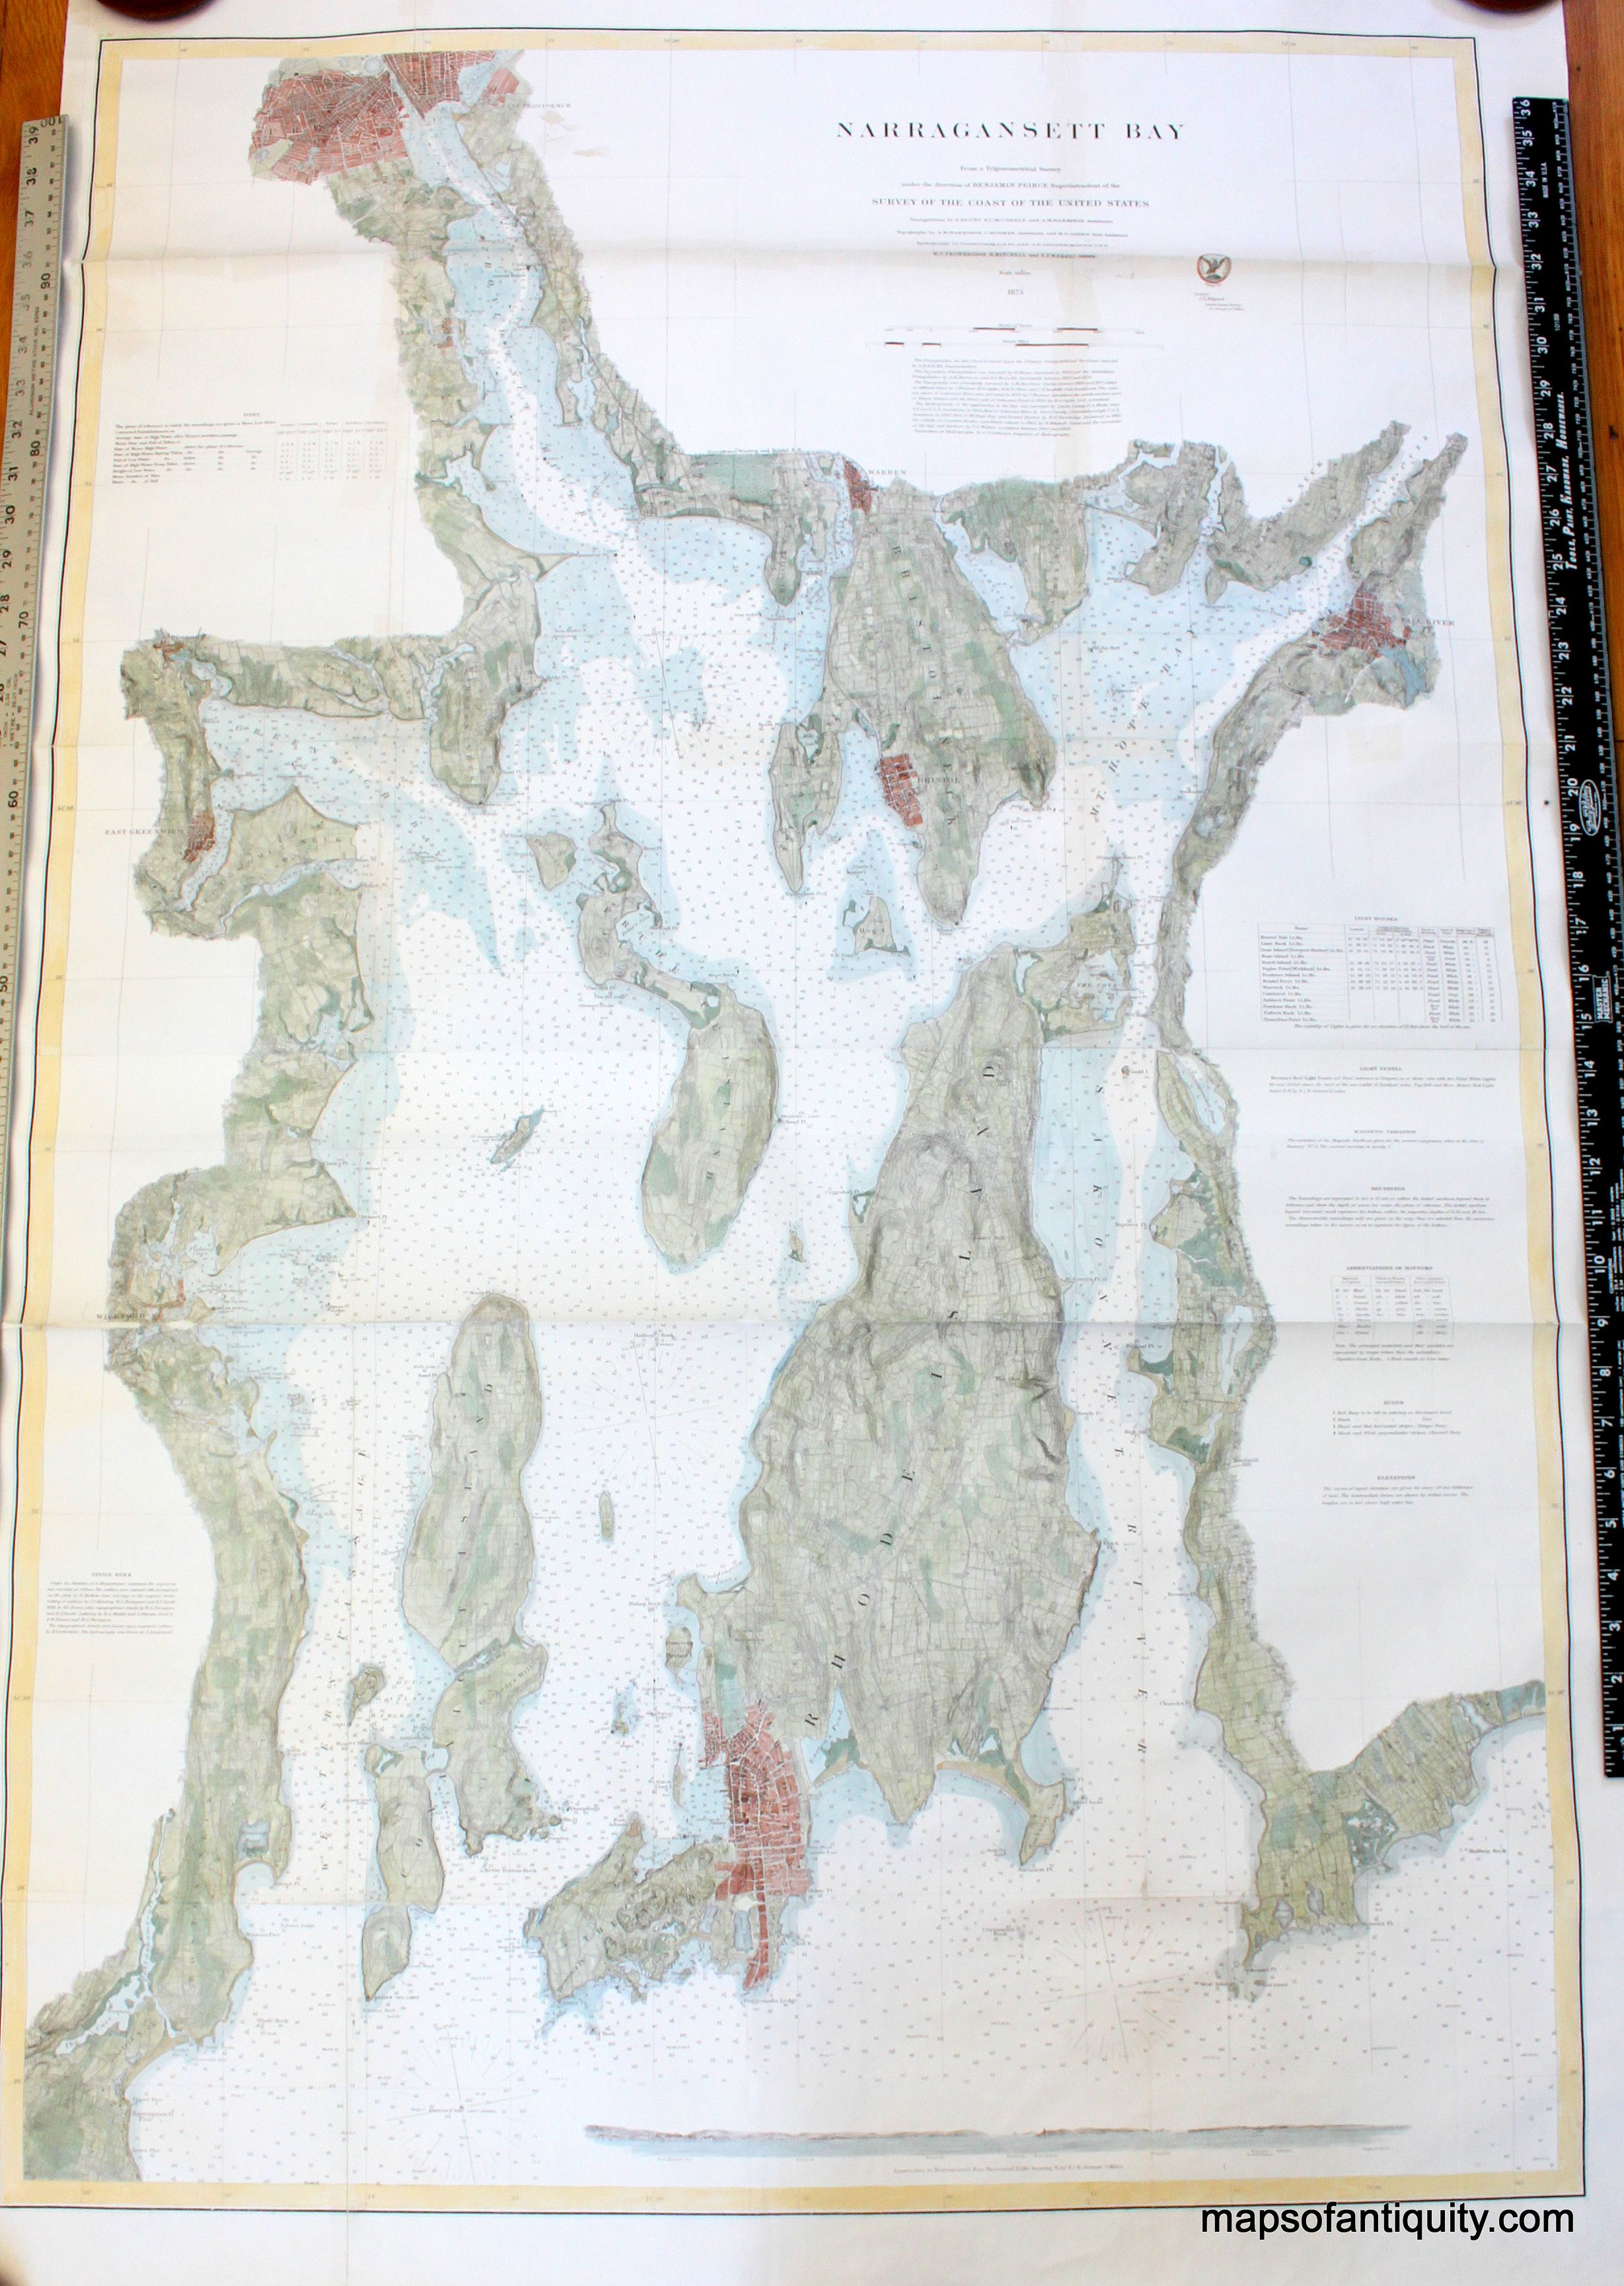 Map Of Us States In 1860%0A Harlem River  New York  Antique Maps and Charts  u     Original  Vintage  Rare  Historical Antique Maps  Charts  Prints  Reproductions of Maps and Chart u